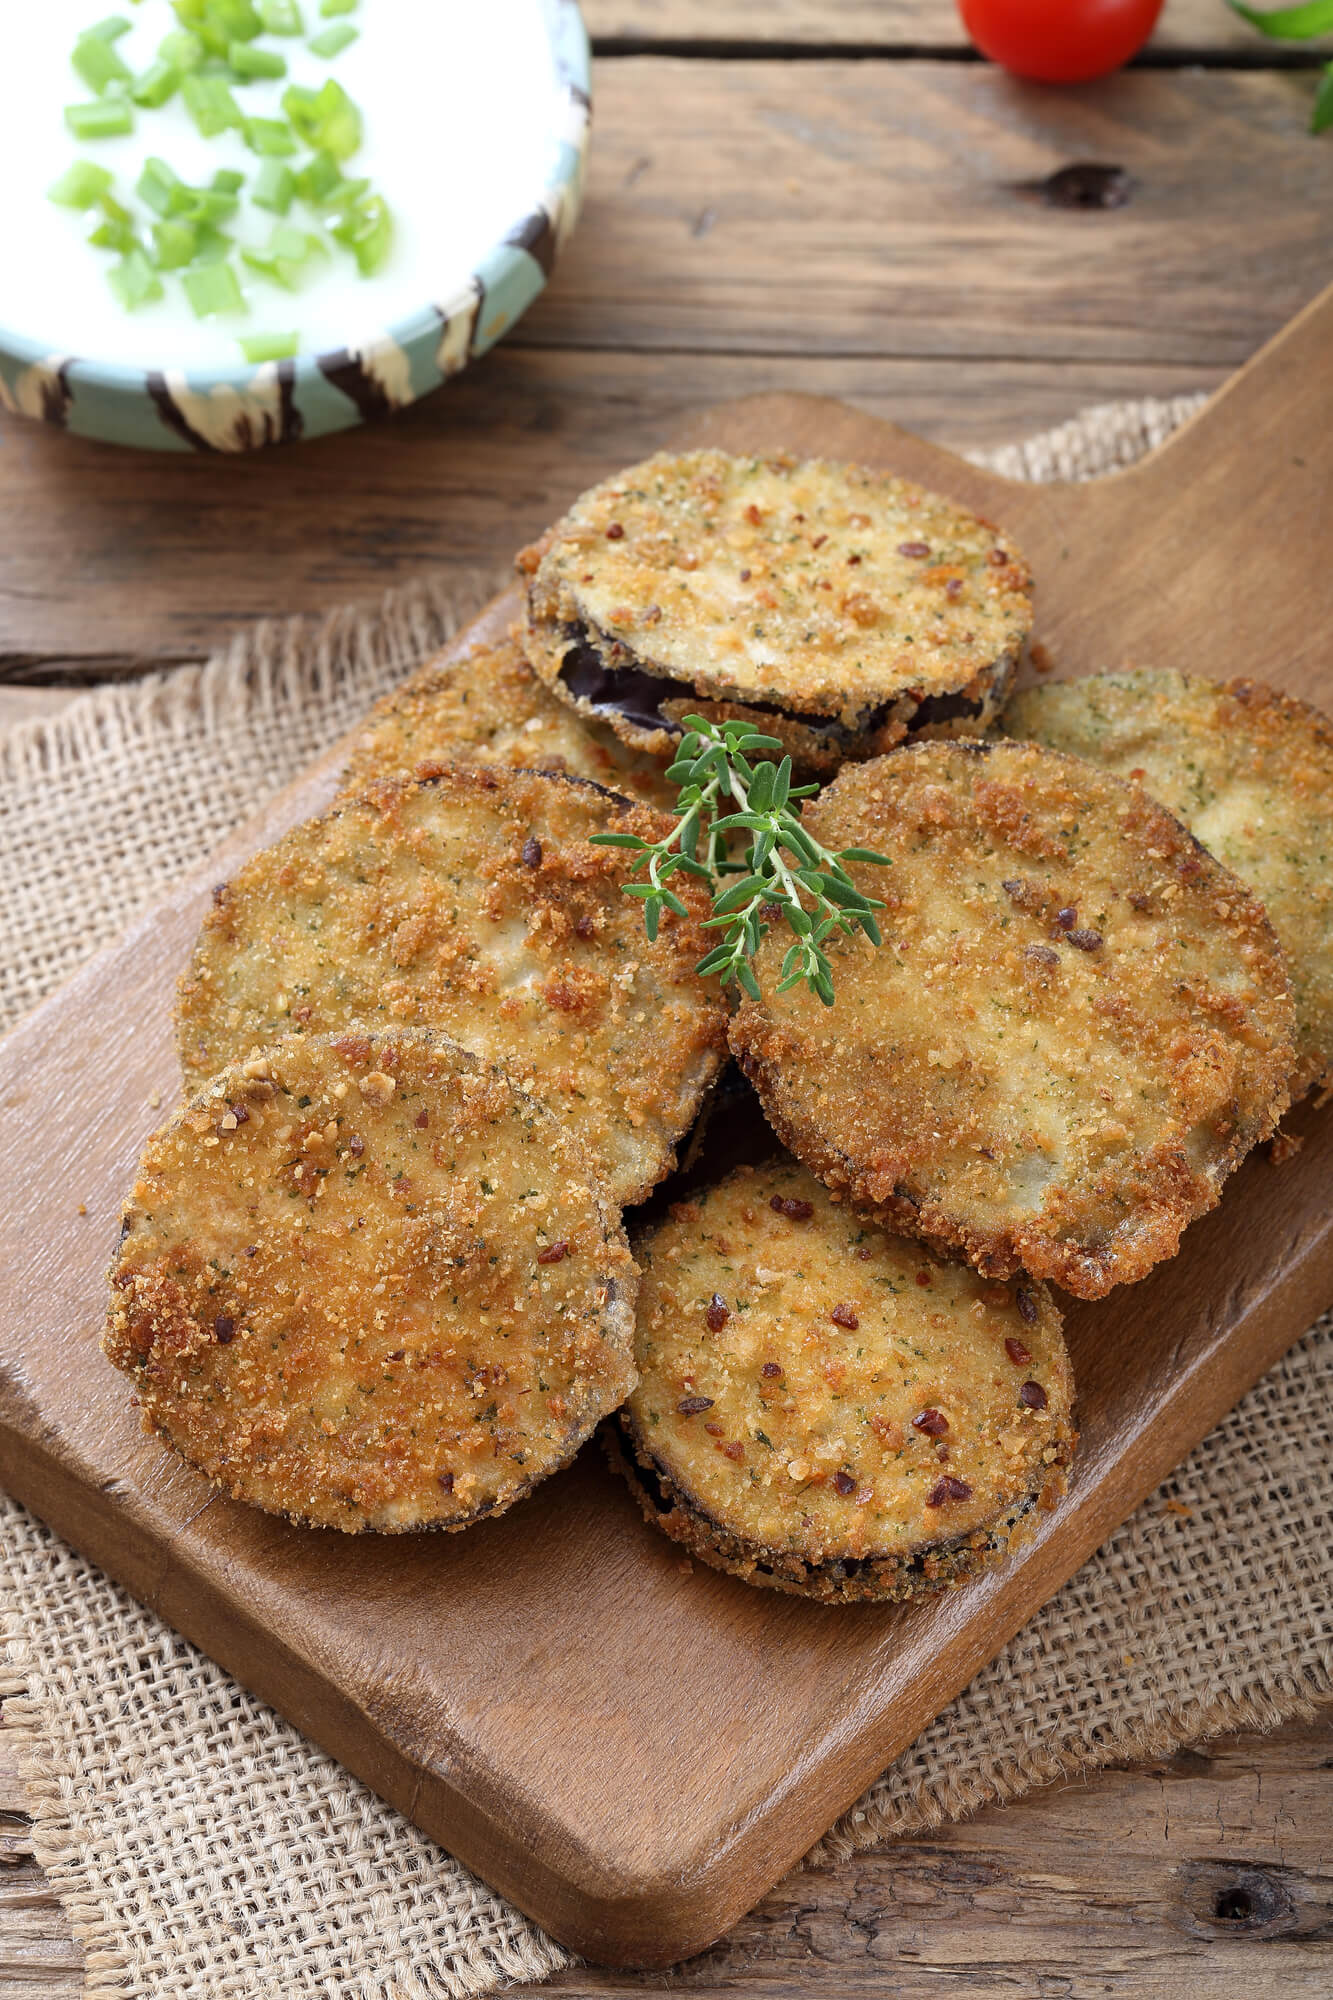 Baked eggplant cutlets on a cutting board with fresh herbs.